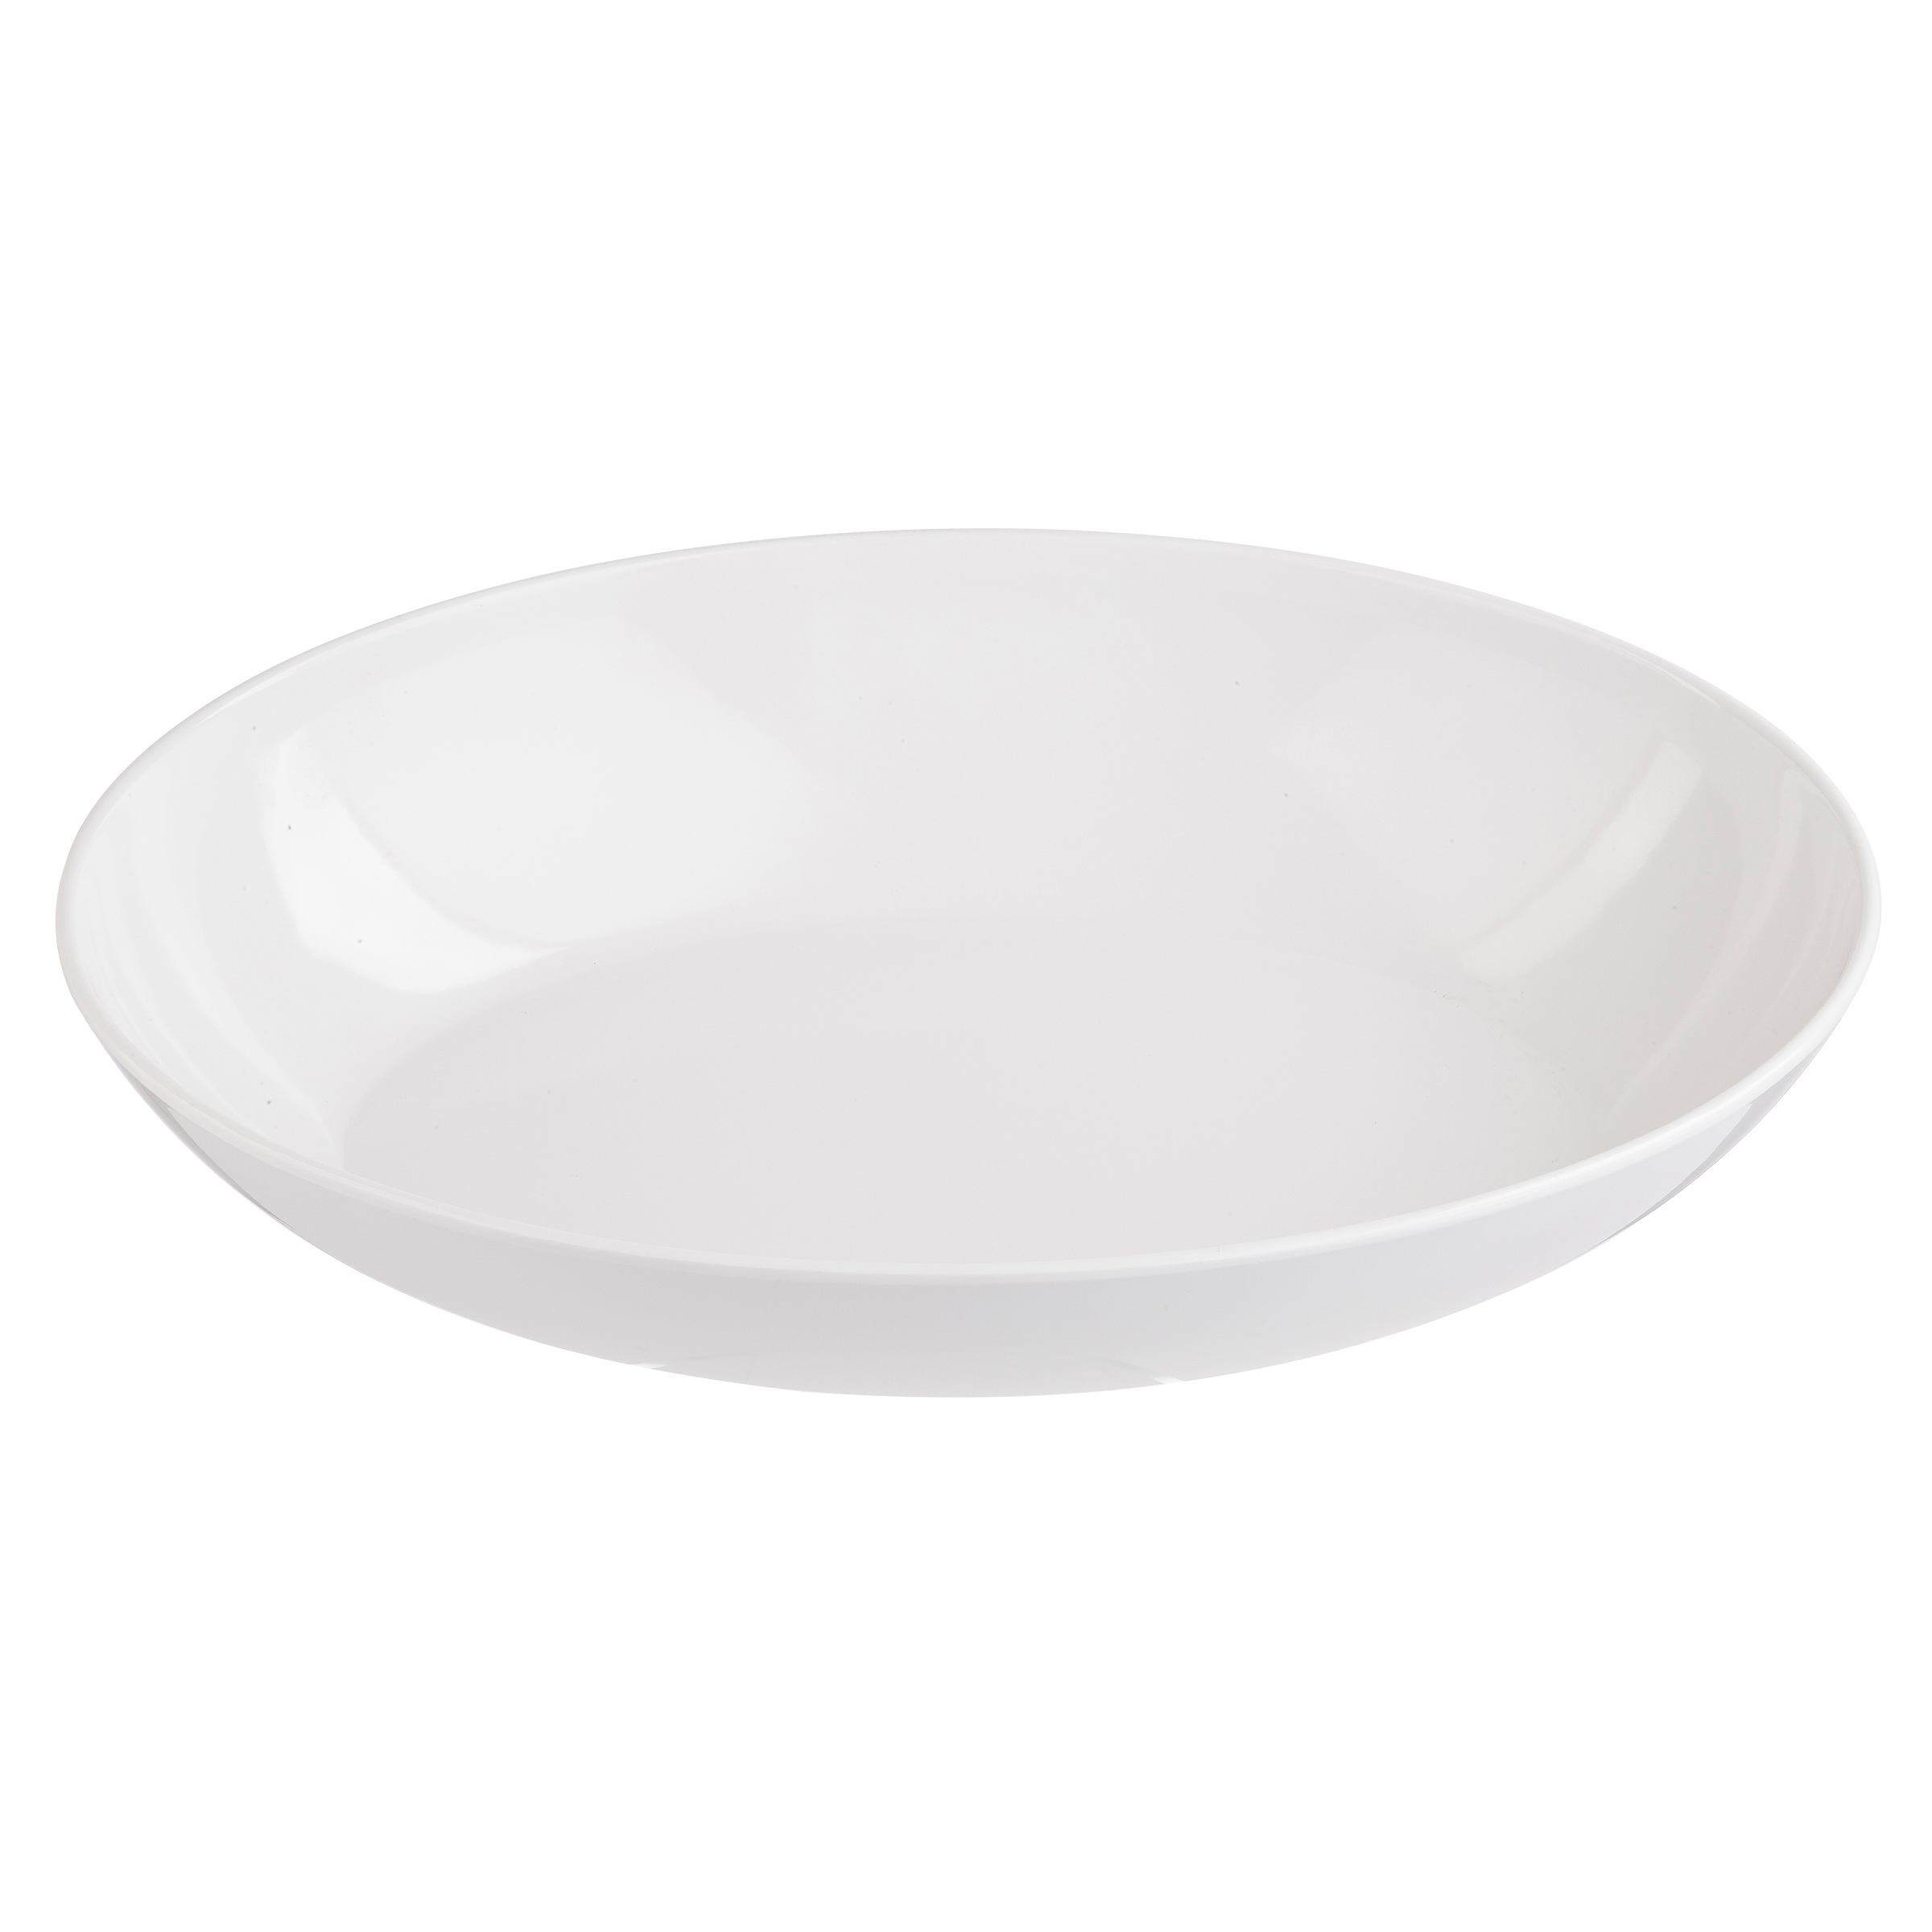 TableCraft Products 1025102 bowl, plastic,  3 - 4 qt (96 - 159 oz)